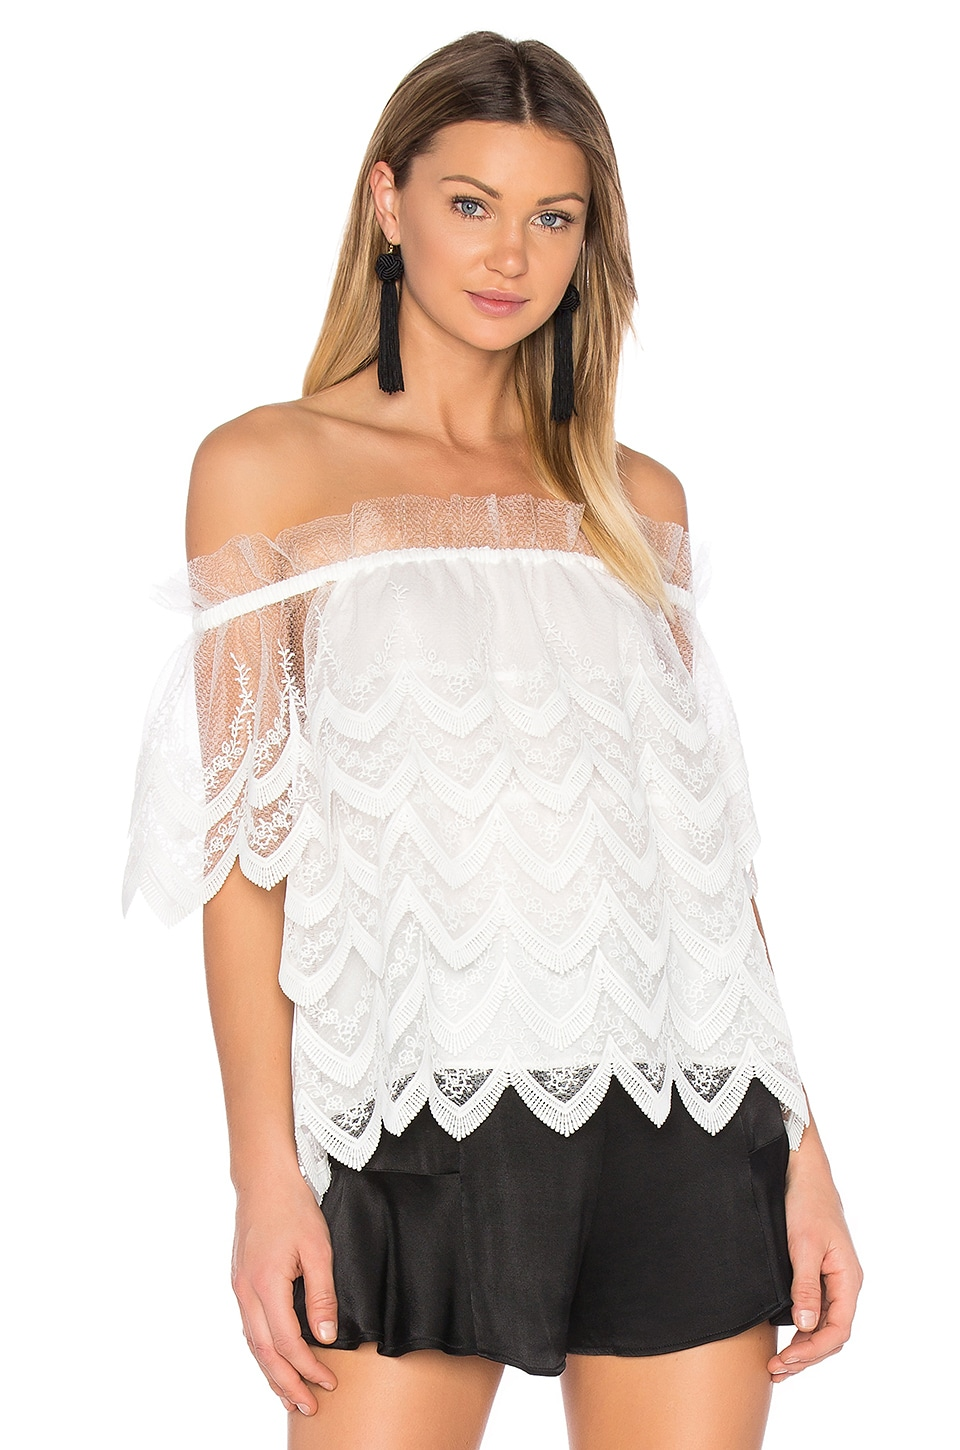 Abelli Top by Alexis